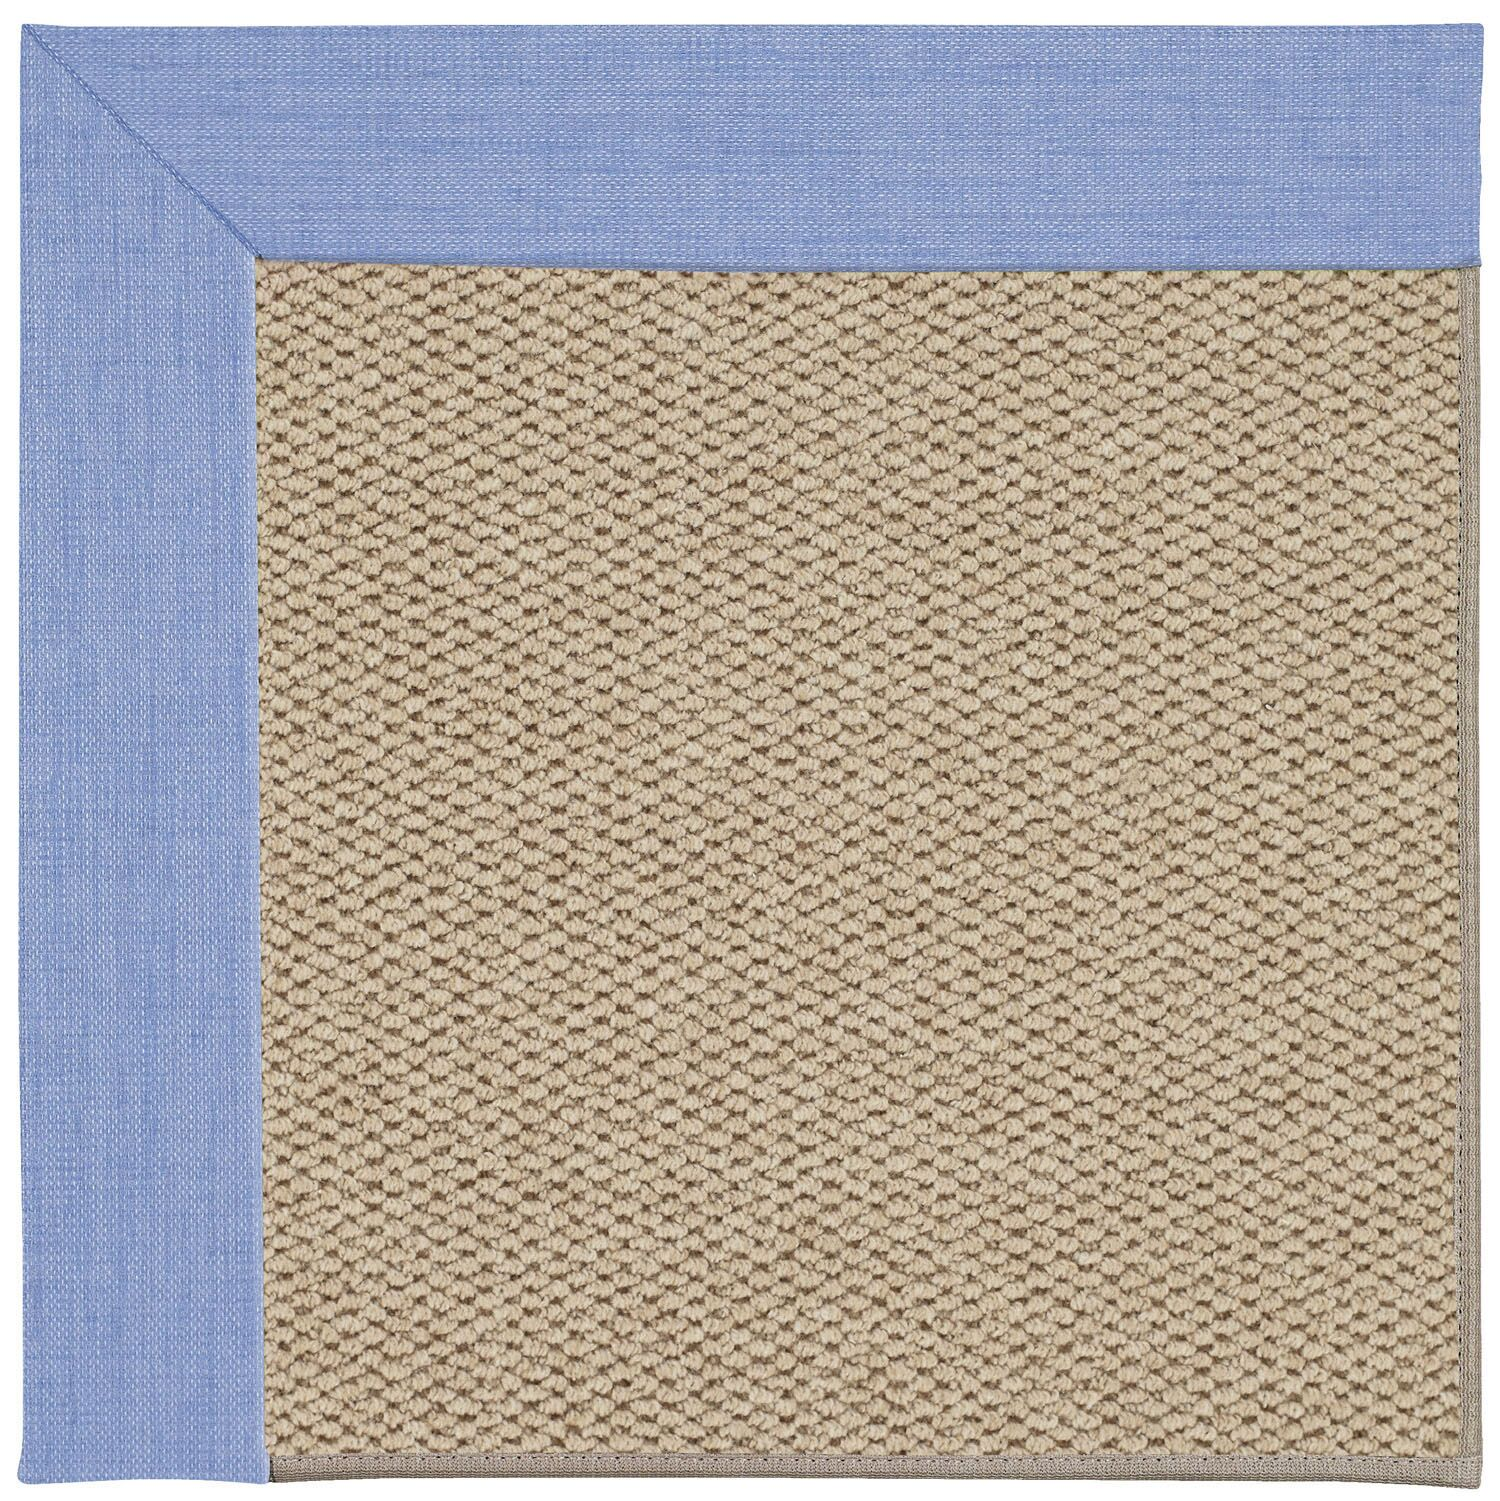 Barrett Champagne Machine Tufted Spa/Beige Area Rug Rug Size: Square 8'